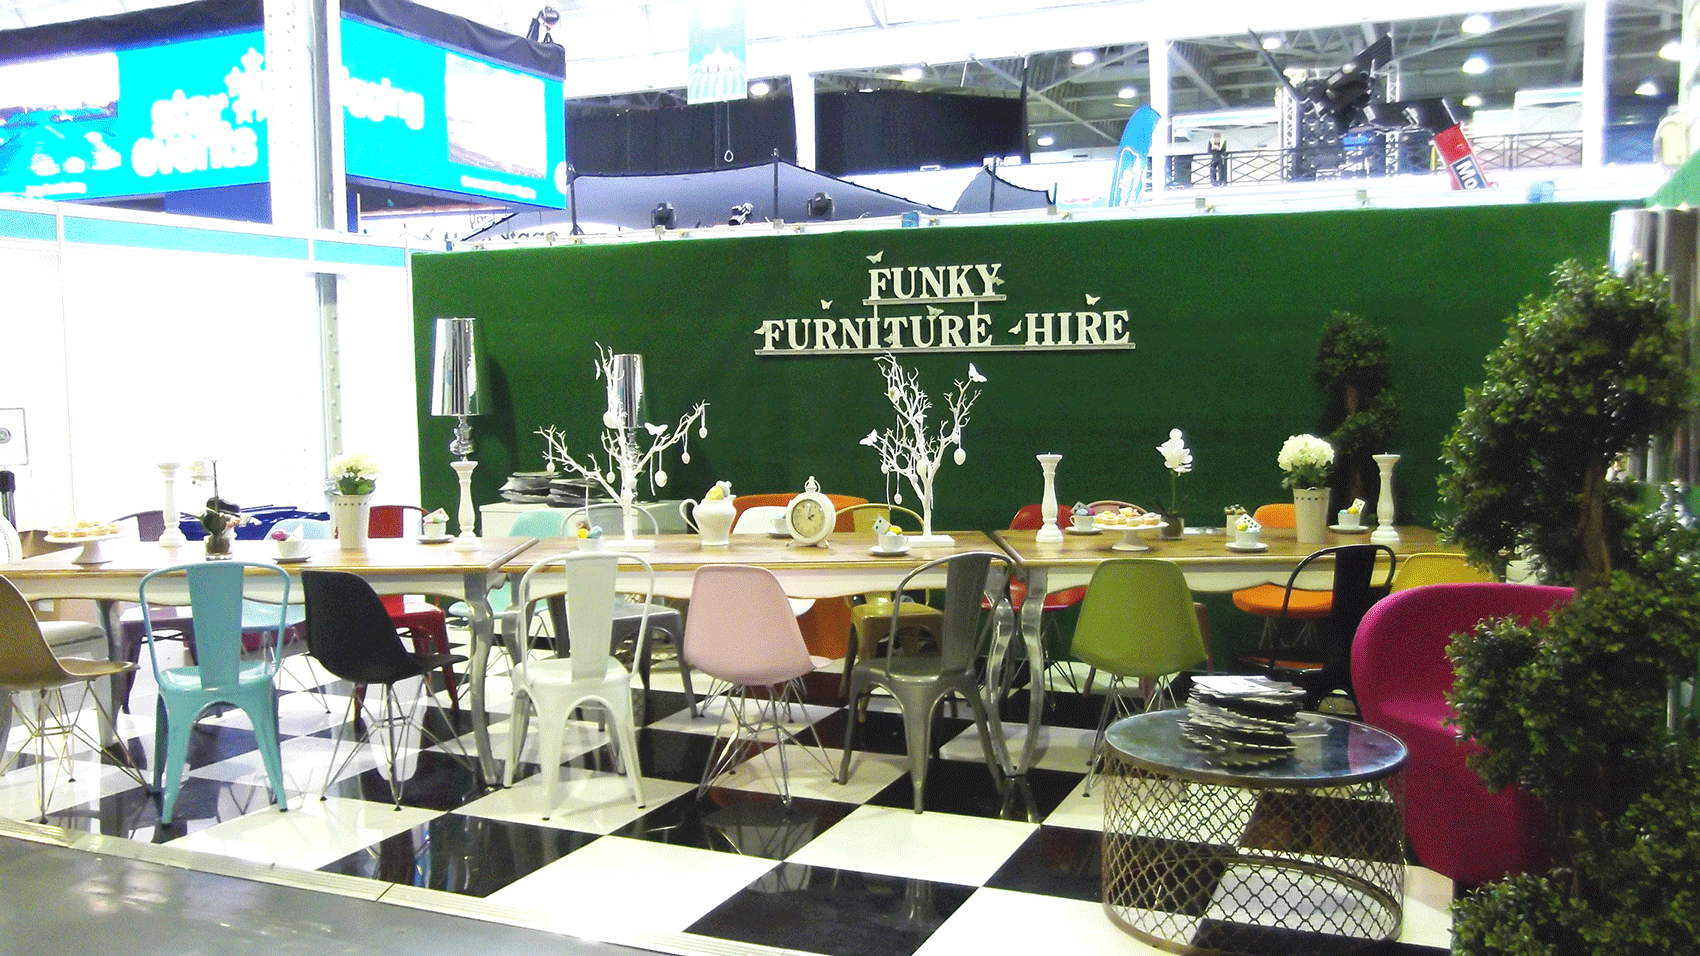 Exhibition Stand Furniture Hire : City furniture hire